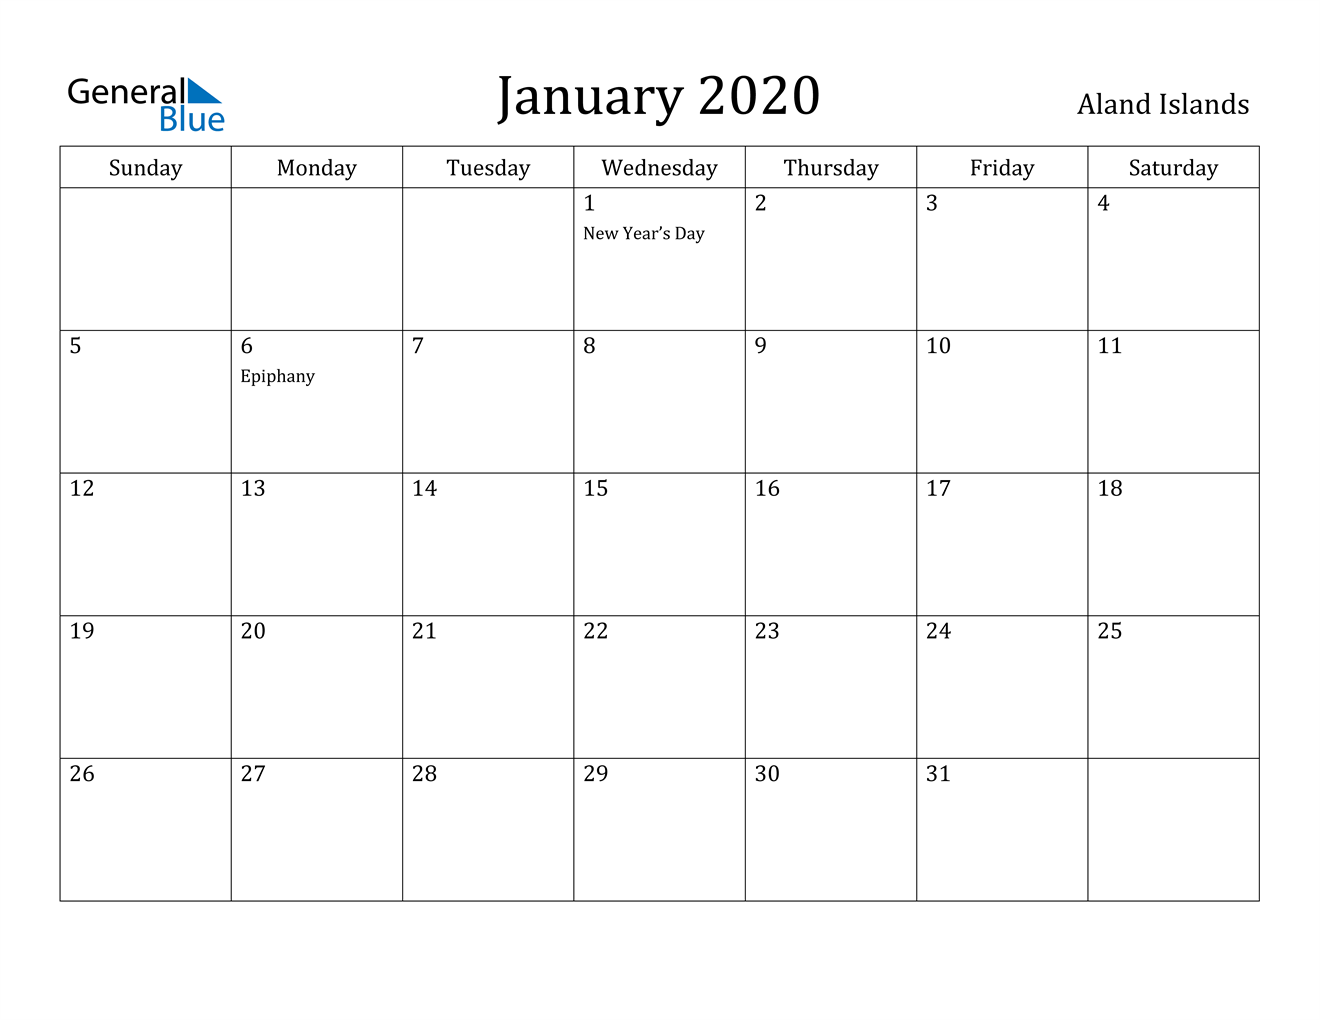 Image of January 2020 Aland Islands Calendar with Holidays Calendar